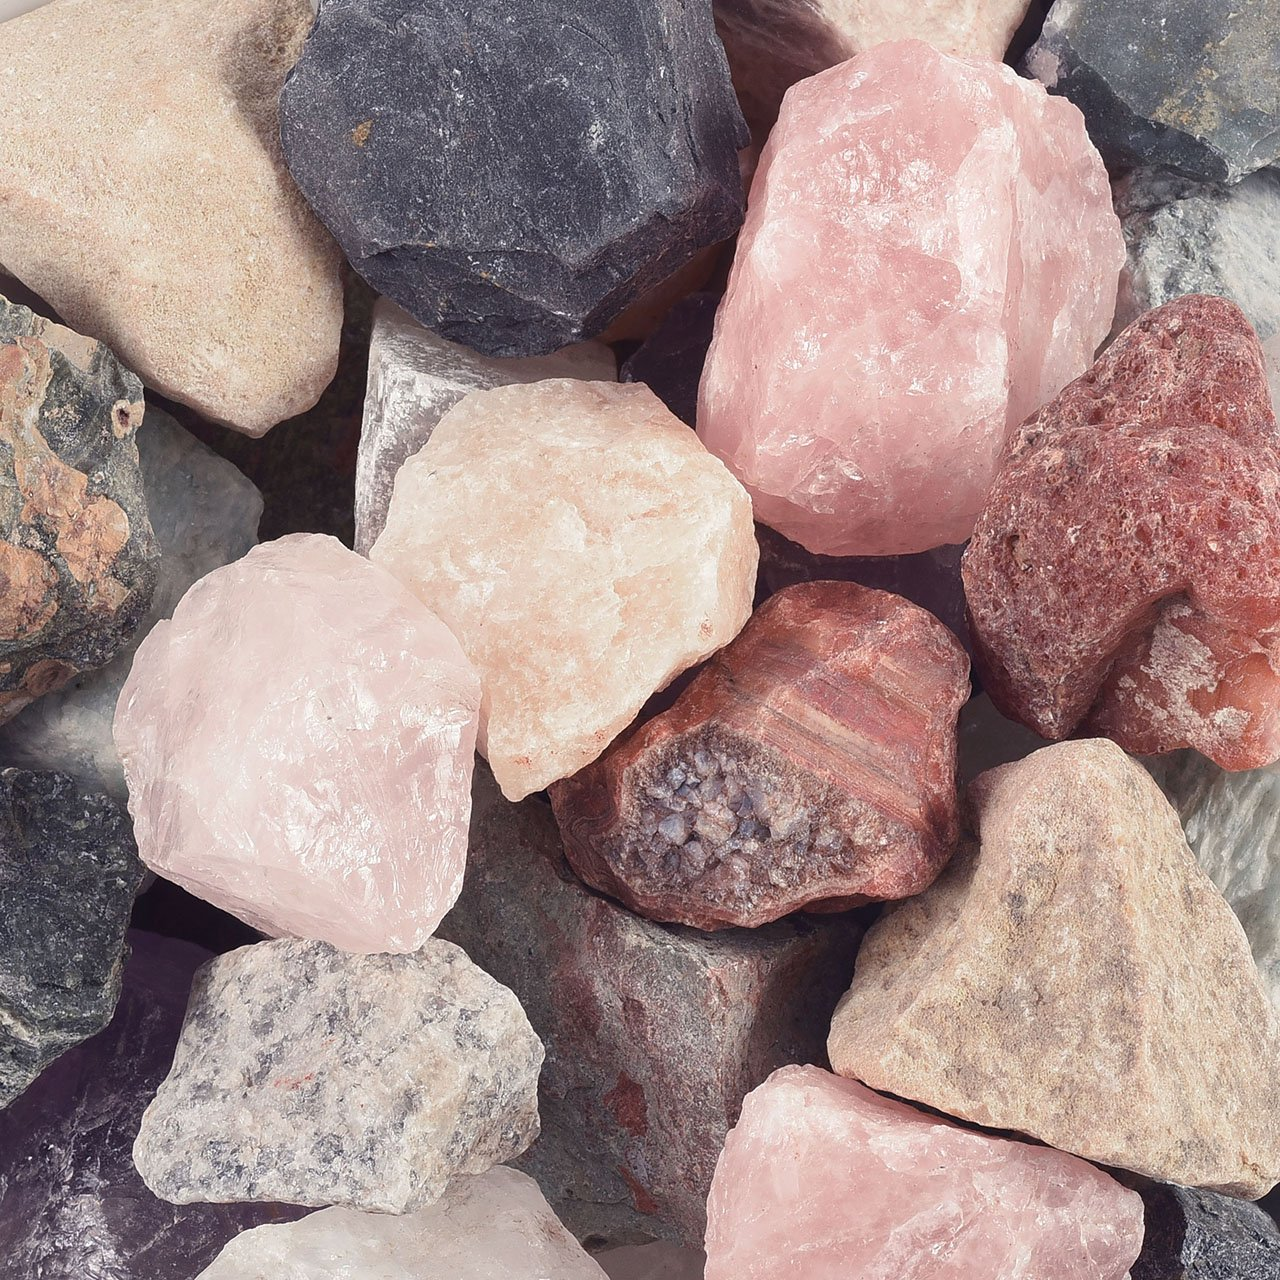 Top Plaza 1.9lb Bulk Rough Irregular Crystal Quartz 0.79-1.57\'\' Raw Natural Reiki Healing Assoirted Stones for Cabbing, Tumbling, Lapidary, Polishing, Wire Wrapping, Wicca